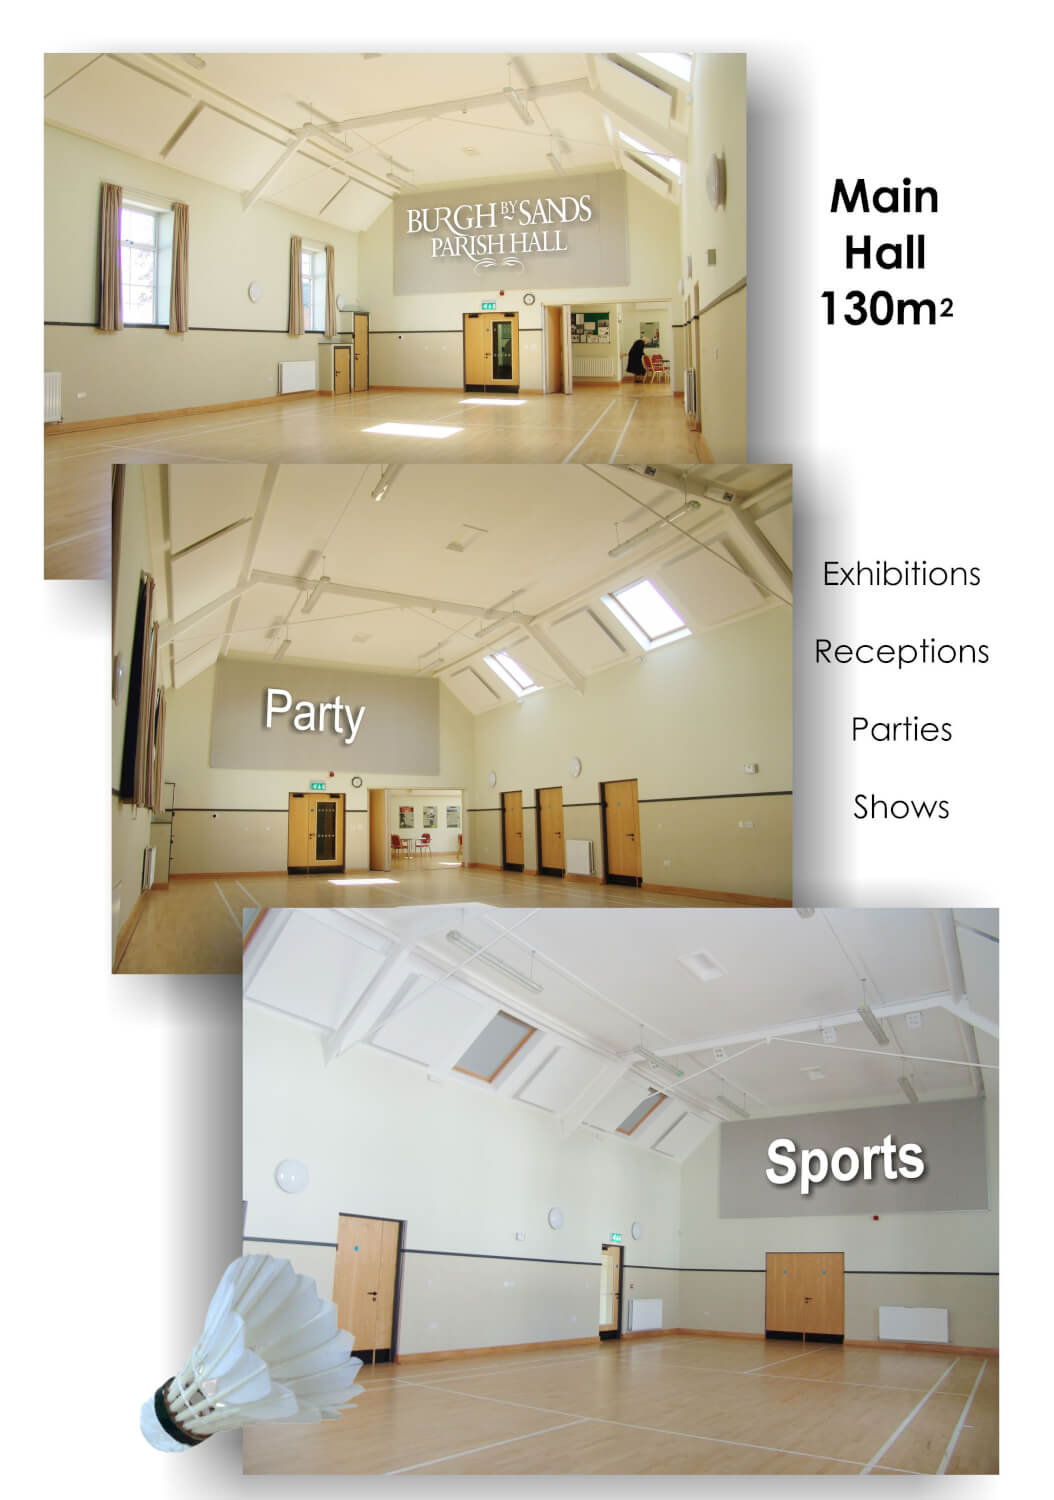 Hall Facilities 1